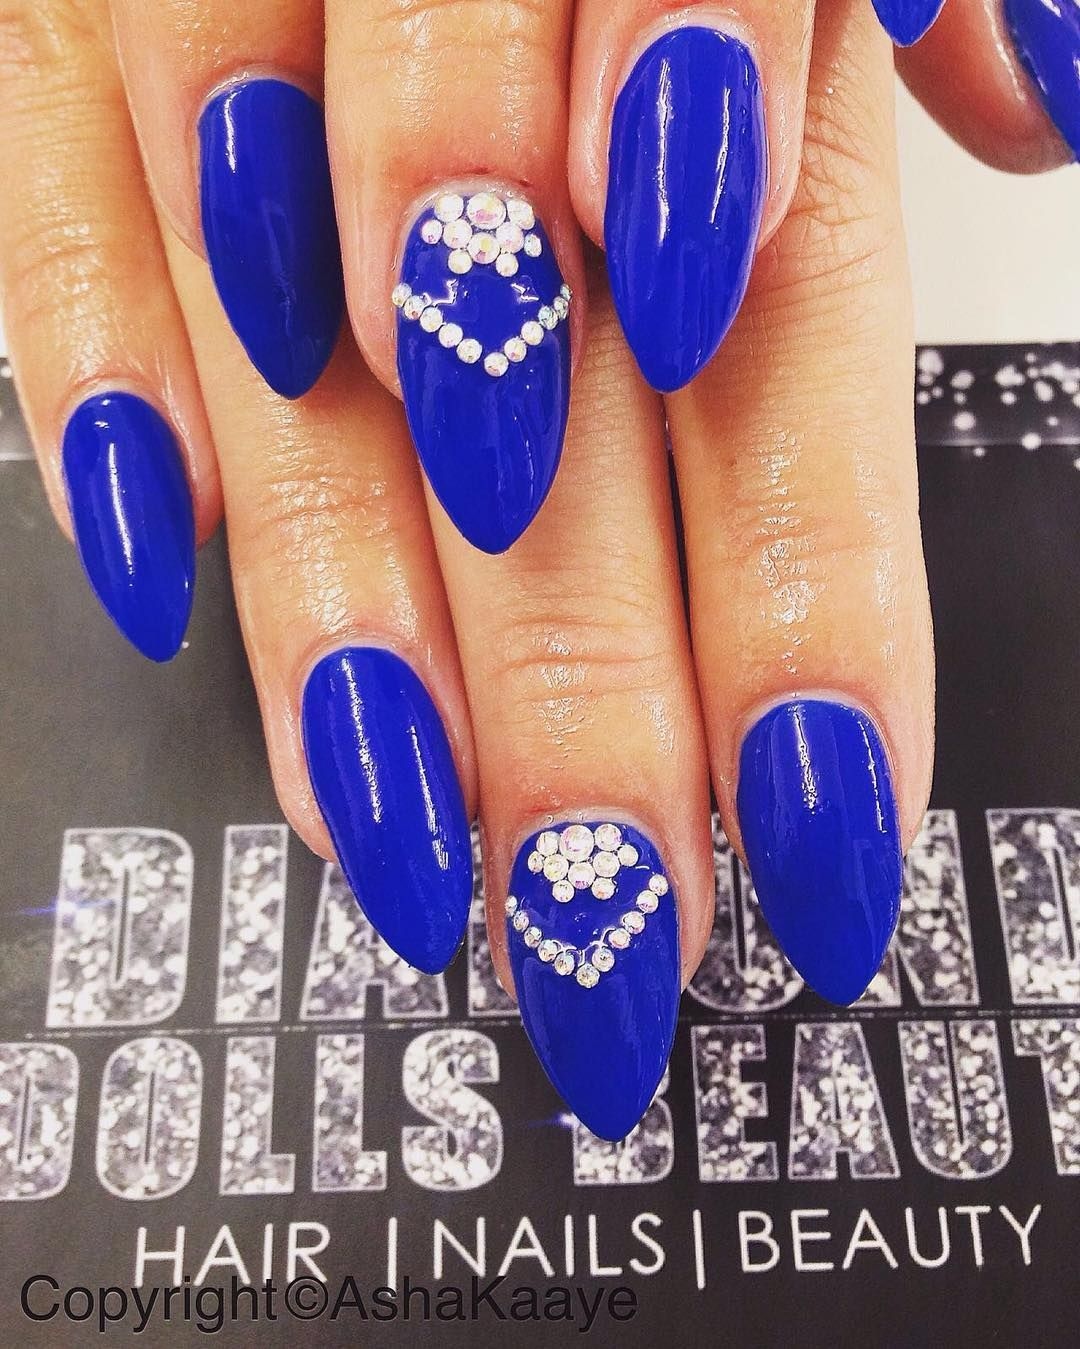 Royal Blue Nail Design - Royal Blue Nail Design Bright Nails Pinterest Royal Blue Nails